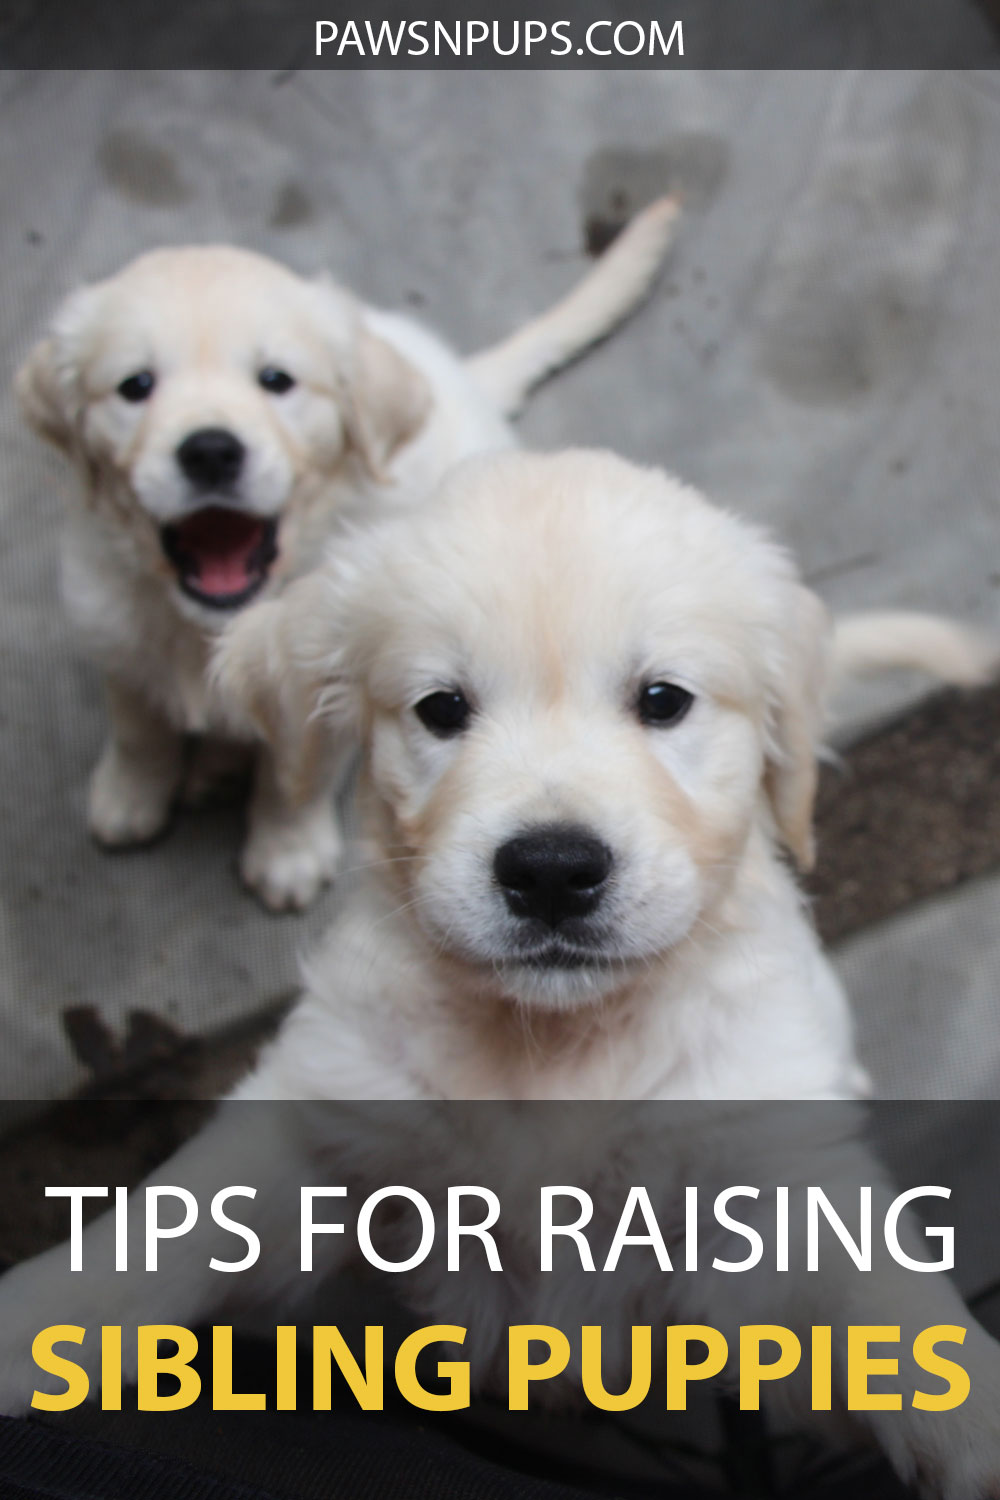 Tips For Raising Sibling Puppies - Golden Retriever puppy  jumping up to camera with sibling puppy sitting in the background with mouth wide open.